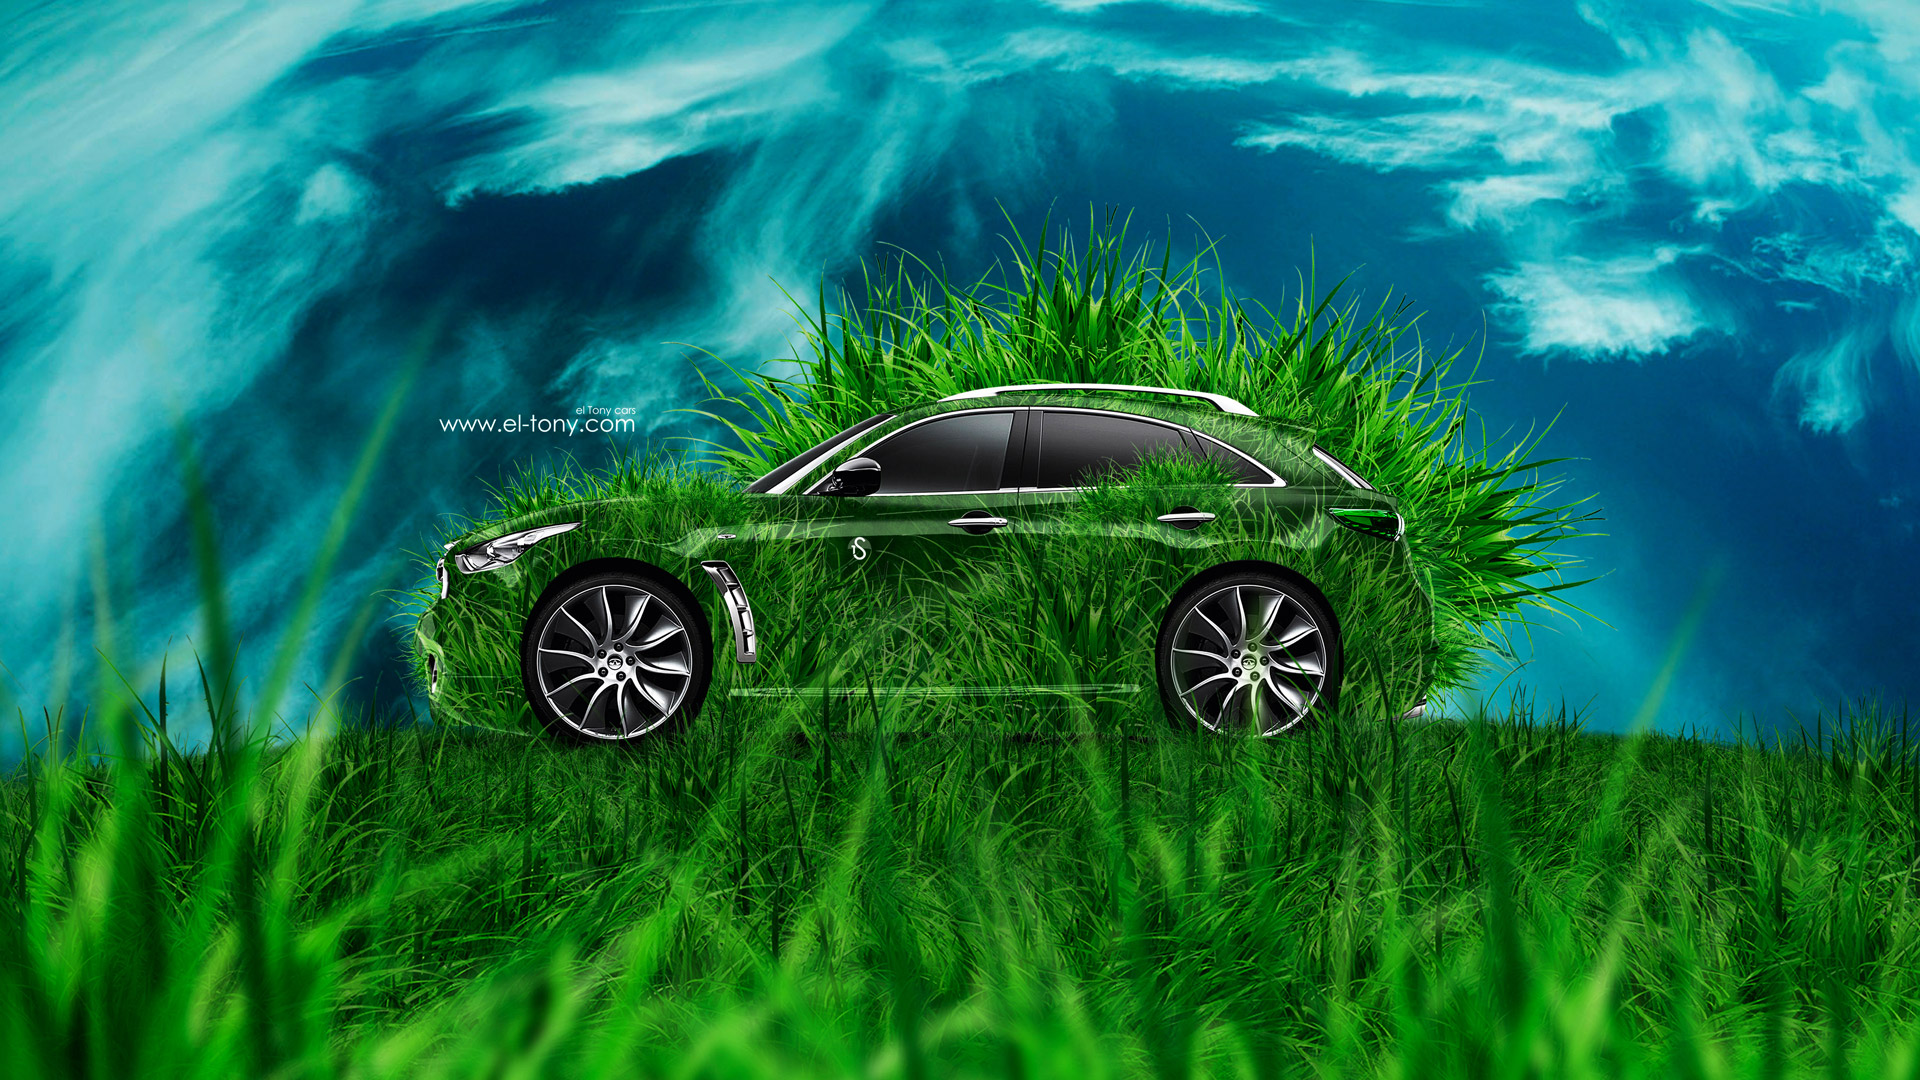 Volvo Xc40 Design Story as well Phaphwadrthaxe likewise 2536 further Audi Electromag ic Hover Car Concept Design likewise Cartoon Lamborghini Drawings. on lamborghini sketch